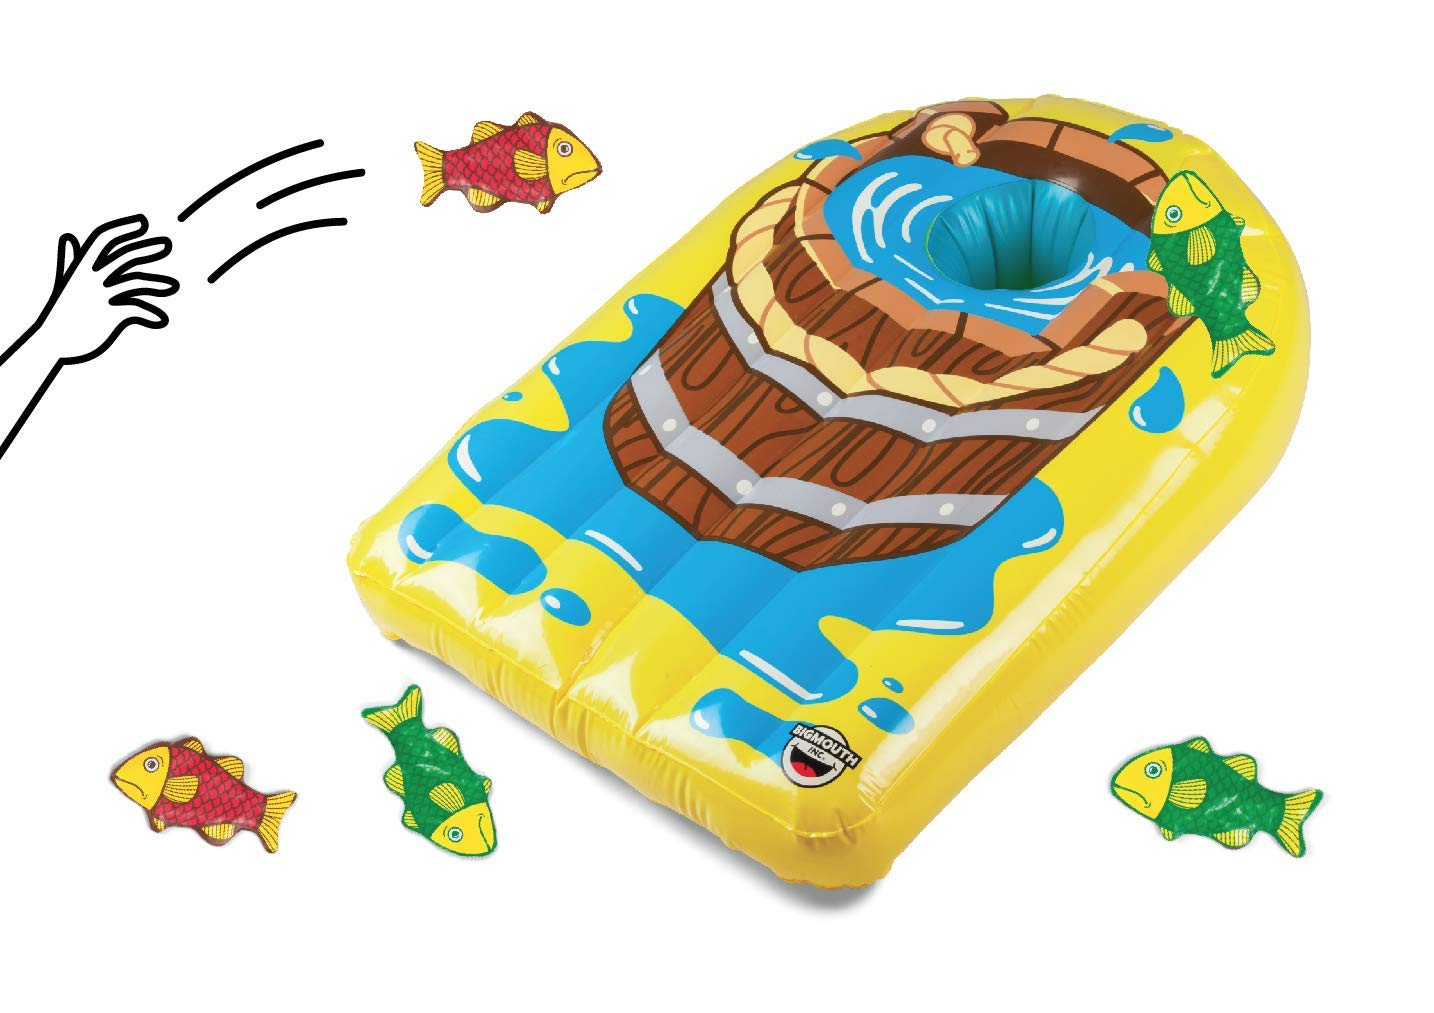 BigMouth Inc Fling A Fish Party Toss Game - Hilarious Lawn Game Includes Inflatable Game Board, and 6 Fish Shaped Bean Bags, Easy Set up and Storage - Great Game for Parties, Celebrations, and More